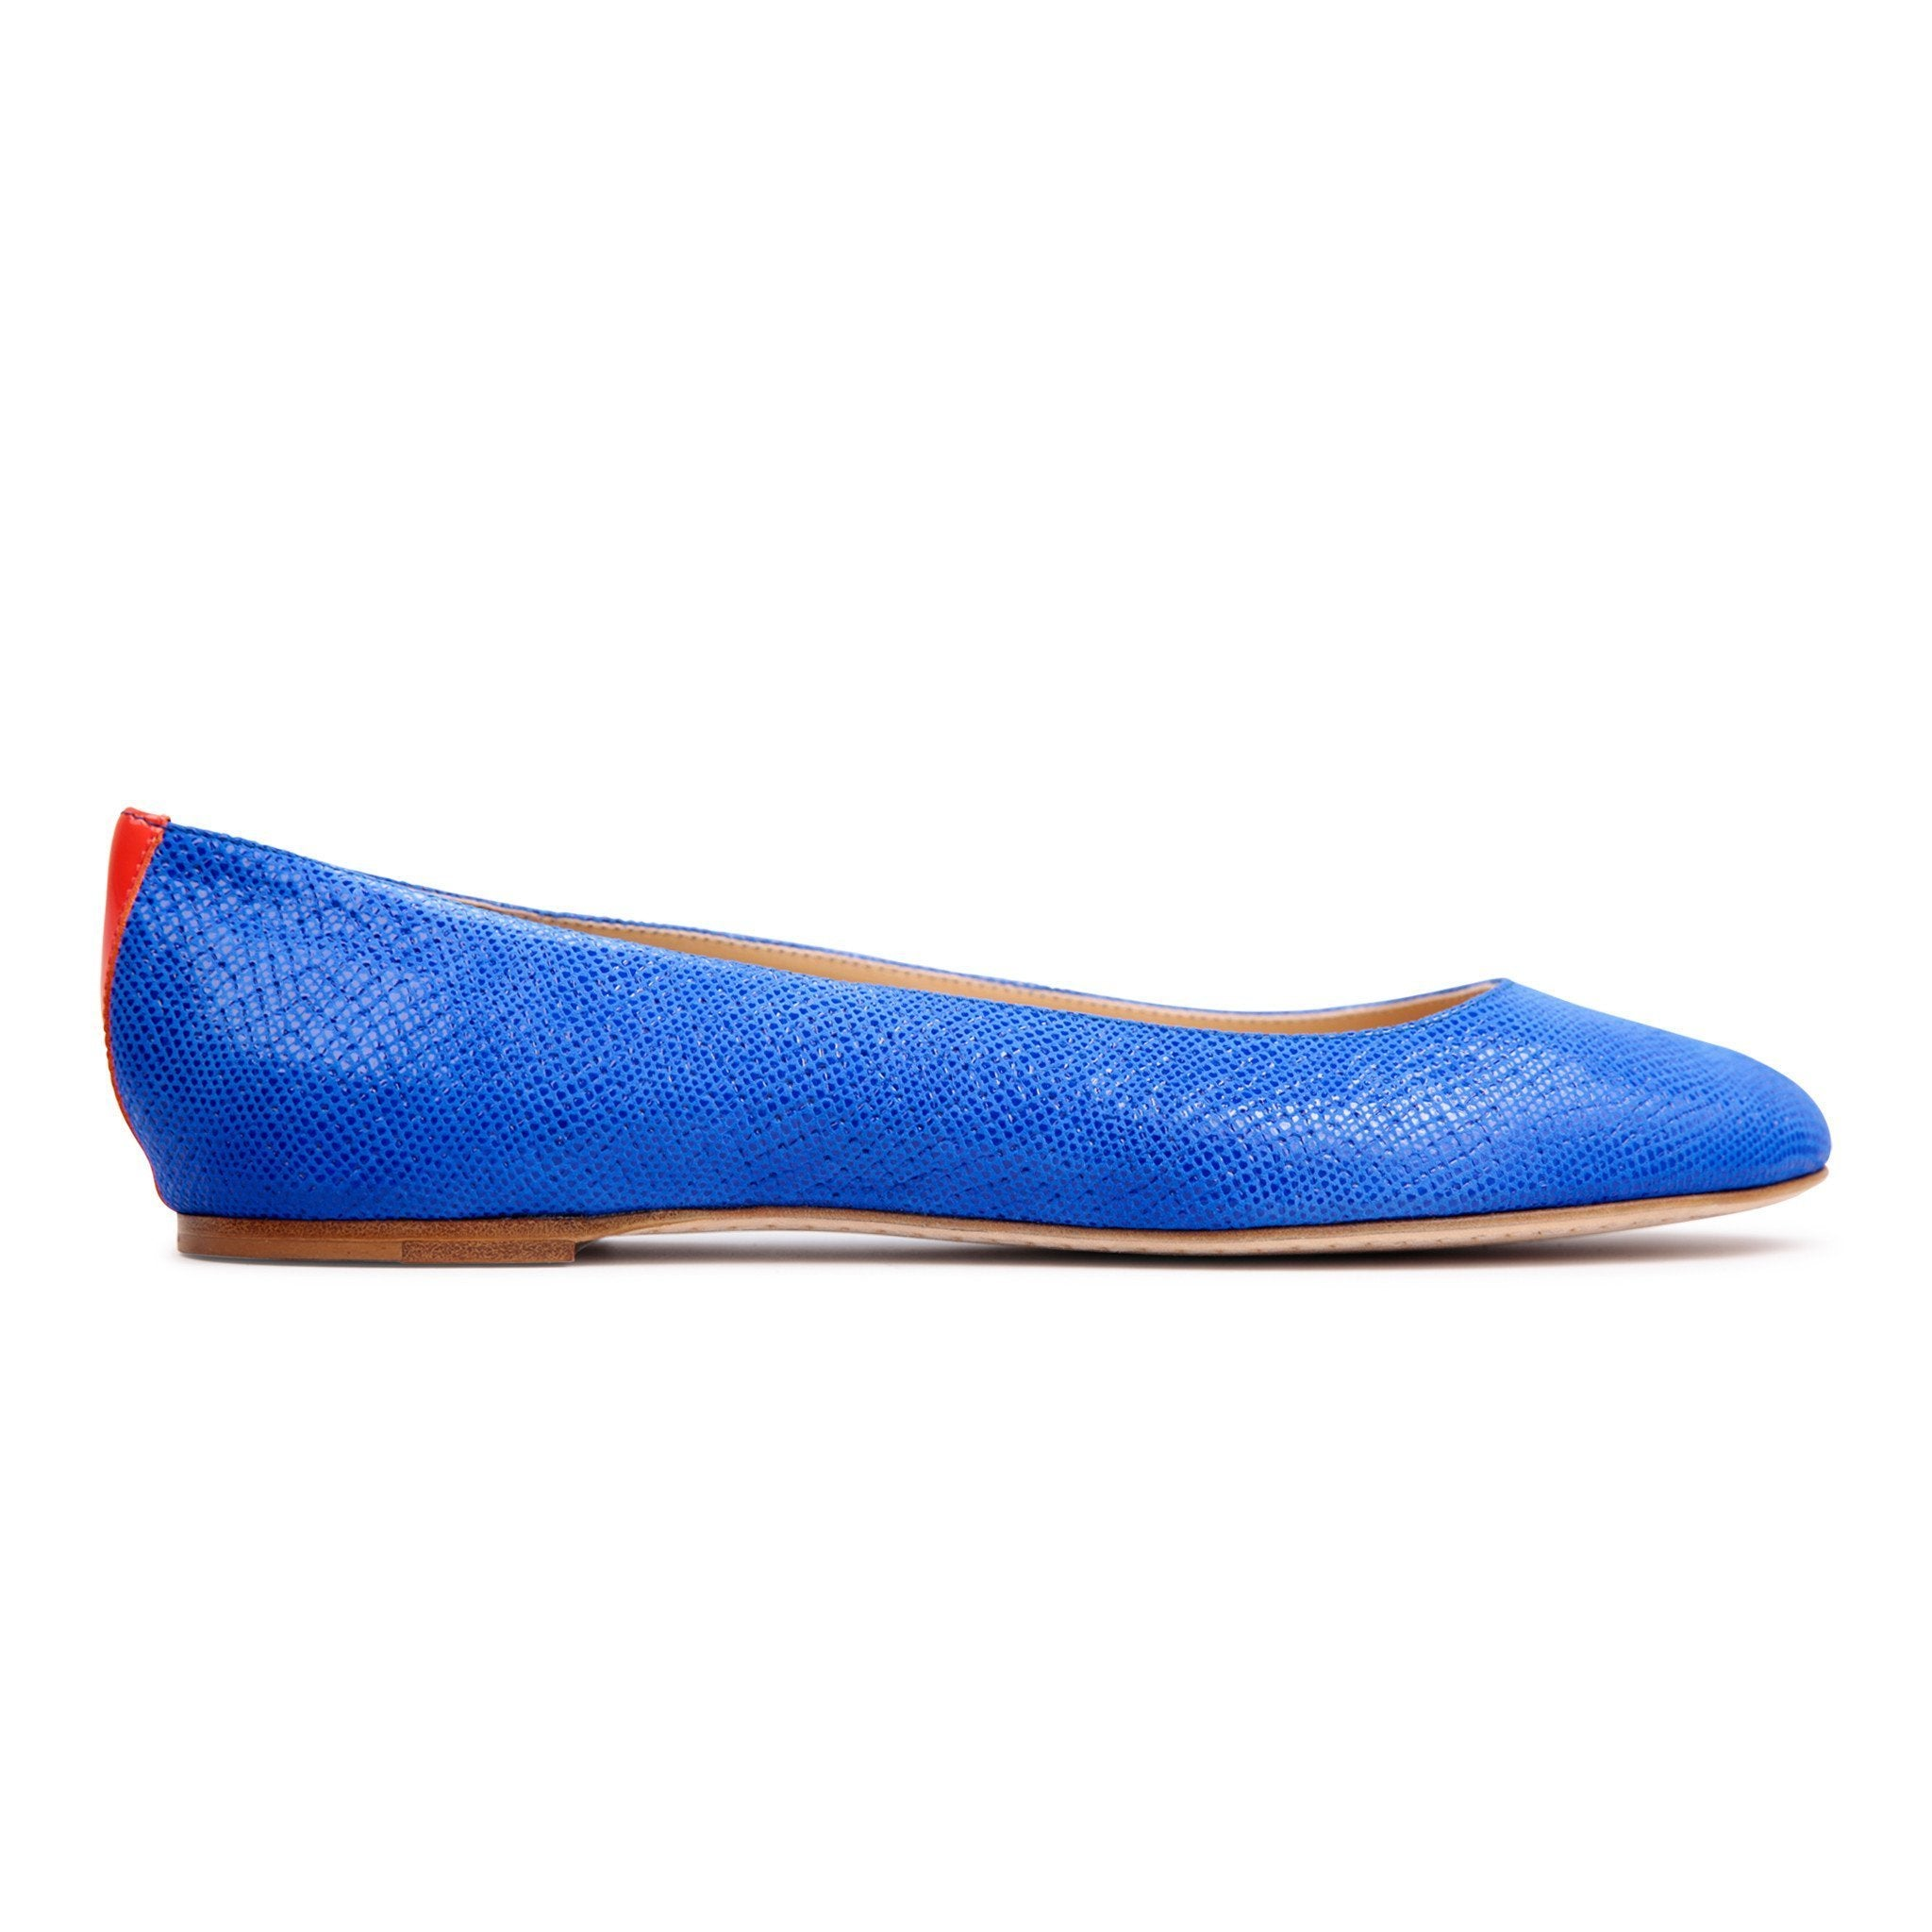 VENEZIA - Velukid Cobalt + Patent Tuscan Sunset, VIAJIYU - Women's Hand Made Sustainable Luxury Shoes. Made in Italy. Made to Order.